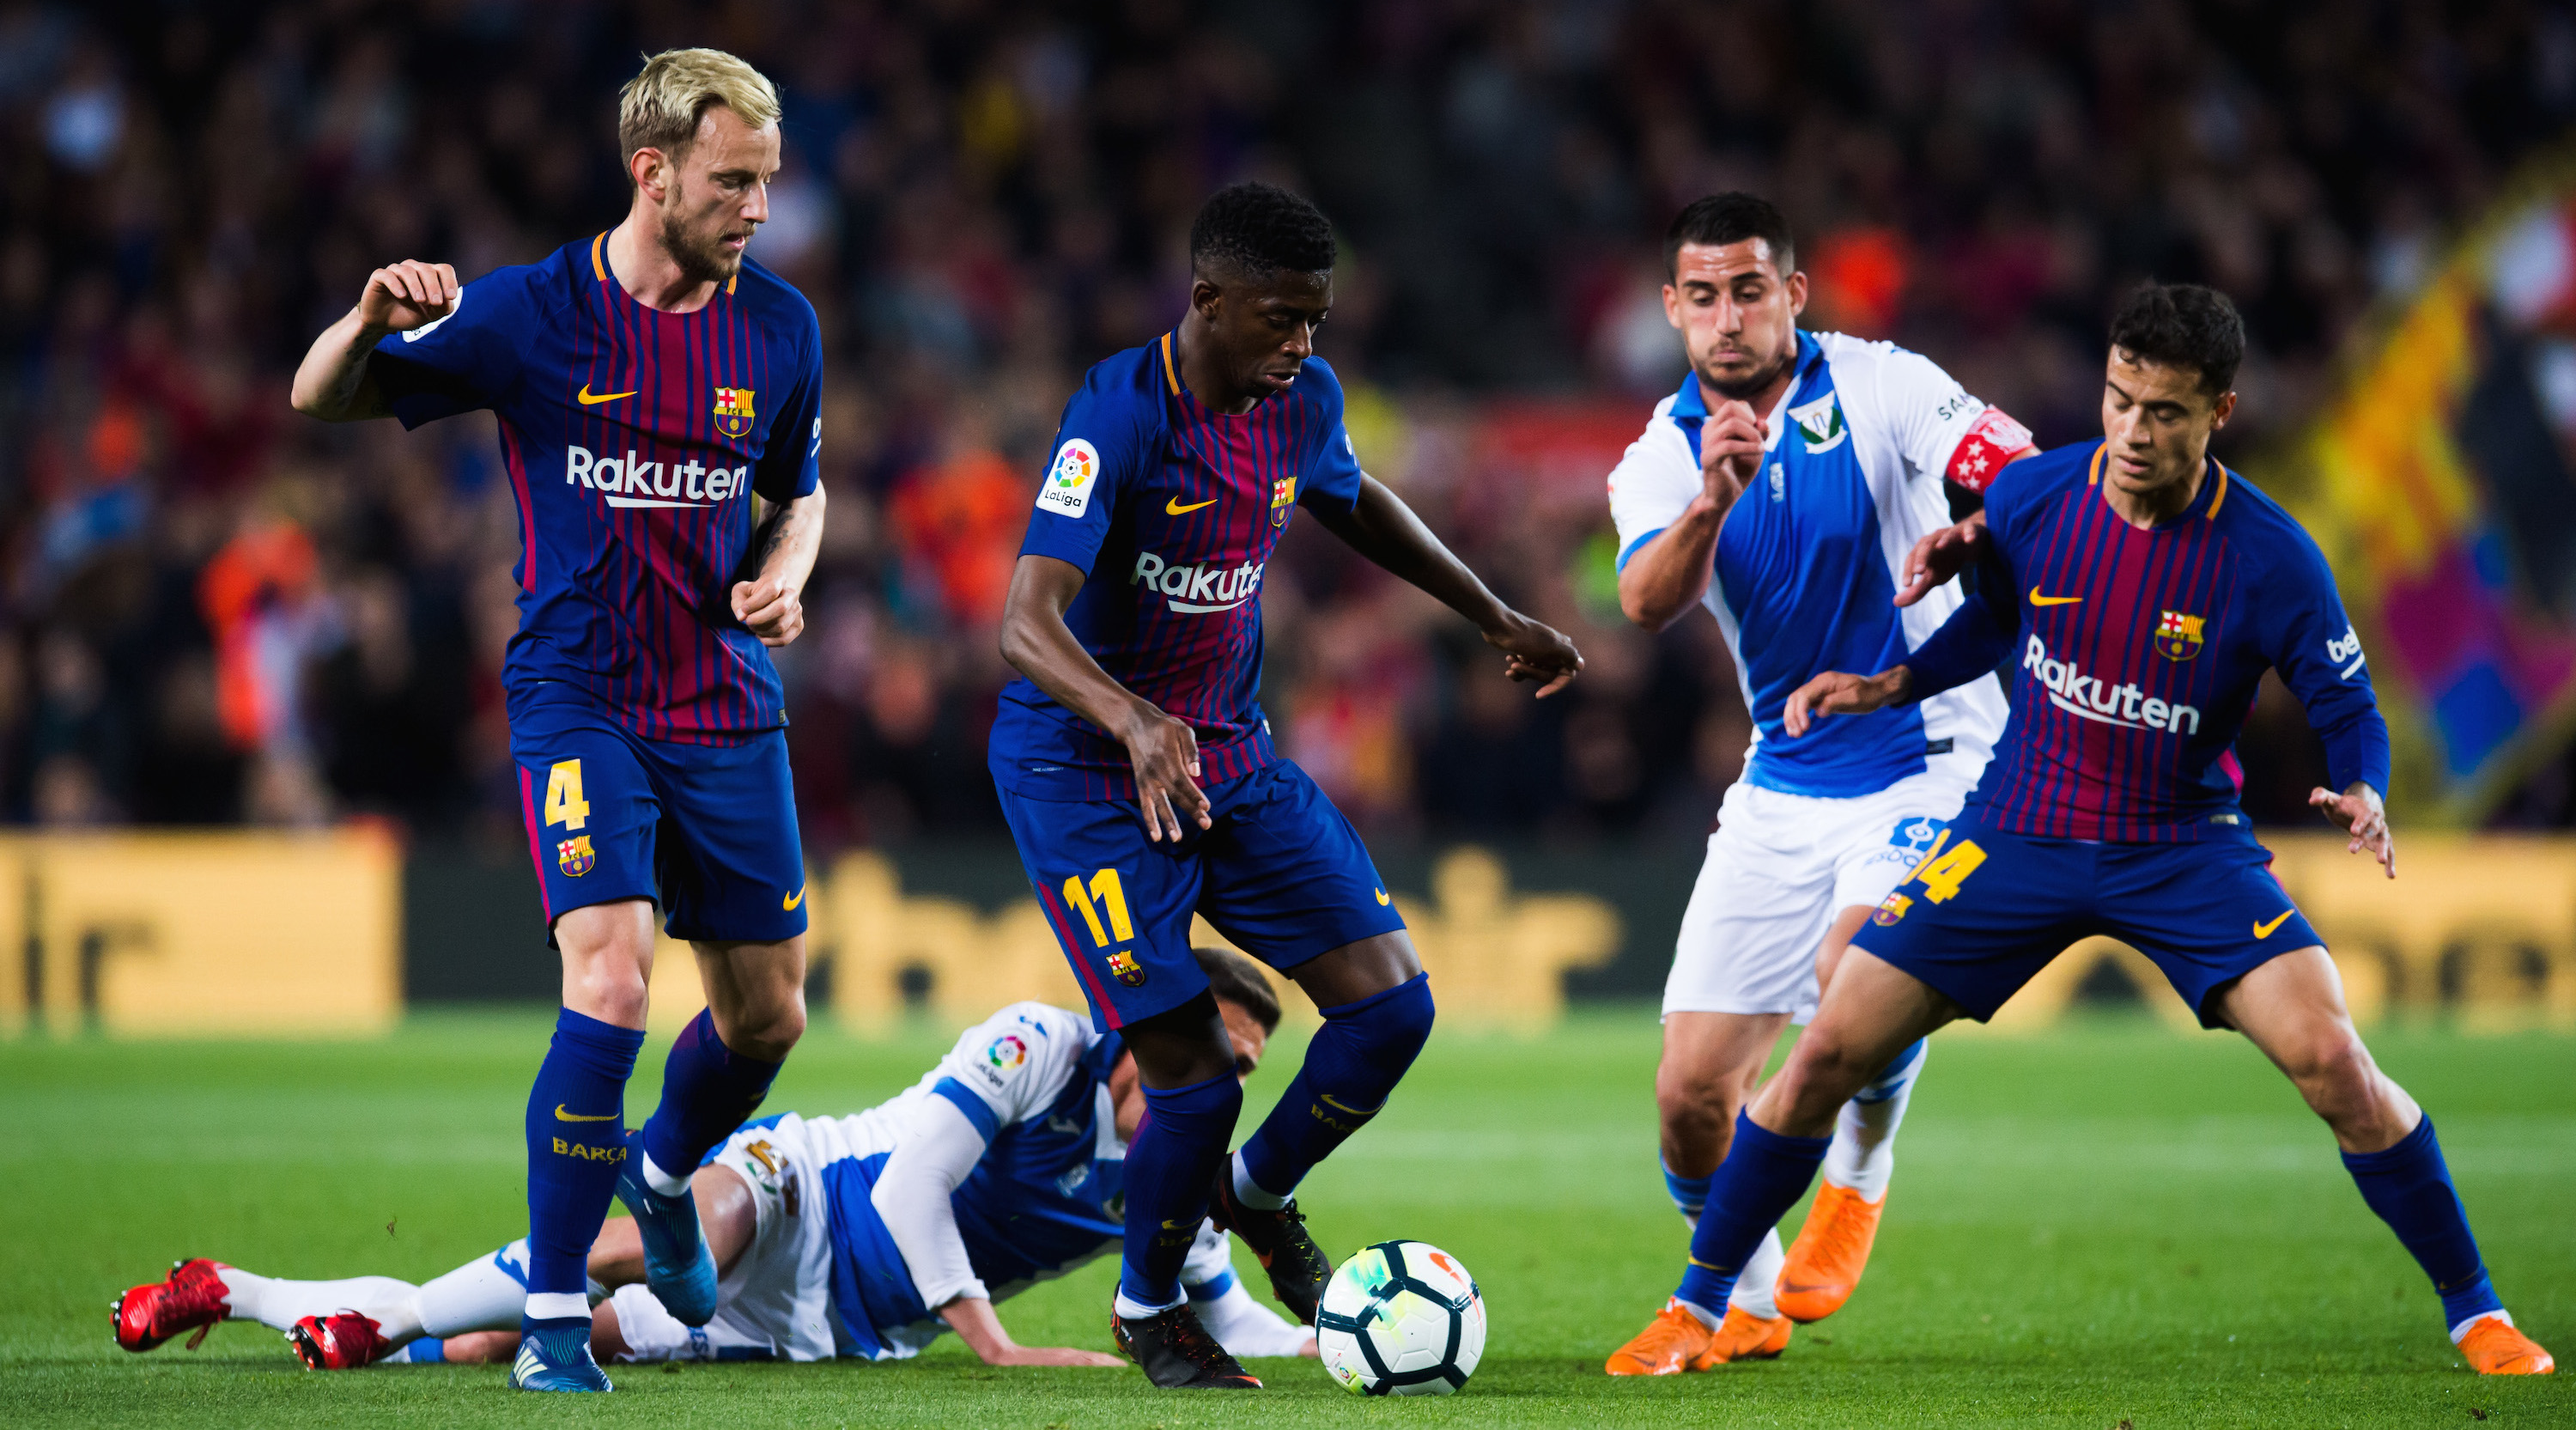 BARCELONA, SPAIN - APRIL 07: Ousmane Dembele of FC Barcelona conducts the ball among his teammates Ivan Rakitic and Philippe Coutinho and Gabriel Pires of CD Leganes during the La Liga match between Barcelona and Leganes at Camp Nou on April 7, 2018 in Barcelona, Spain. (Photo by Alex Caparros/Getty Images)